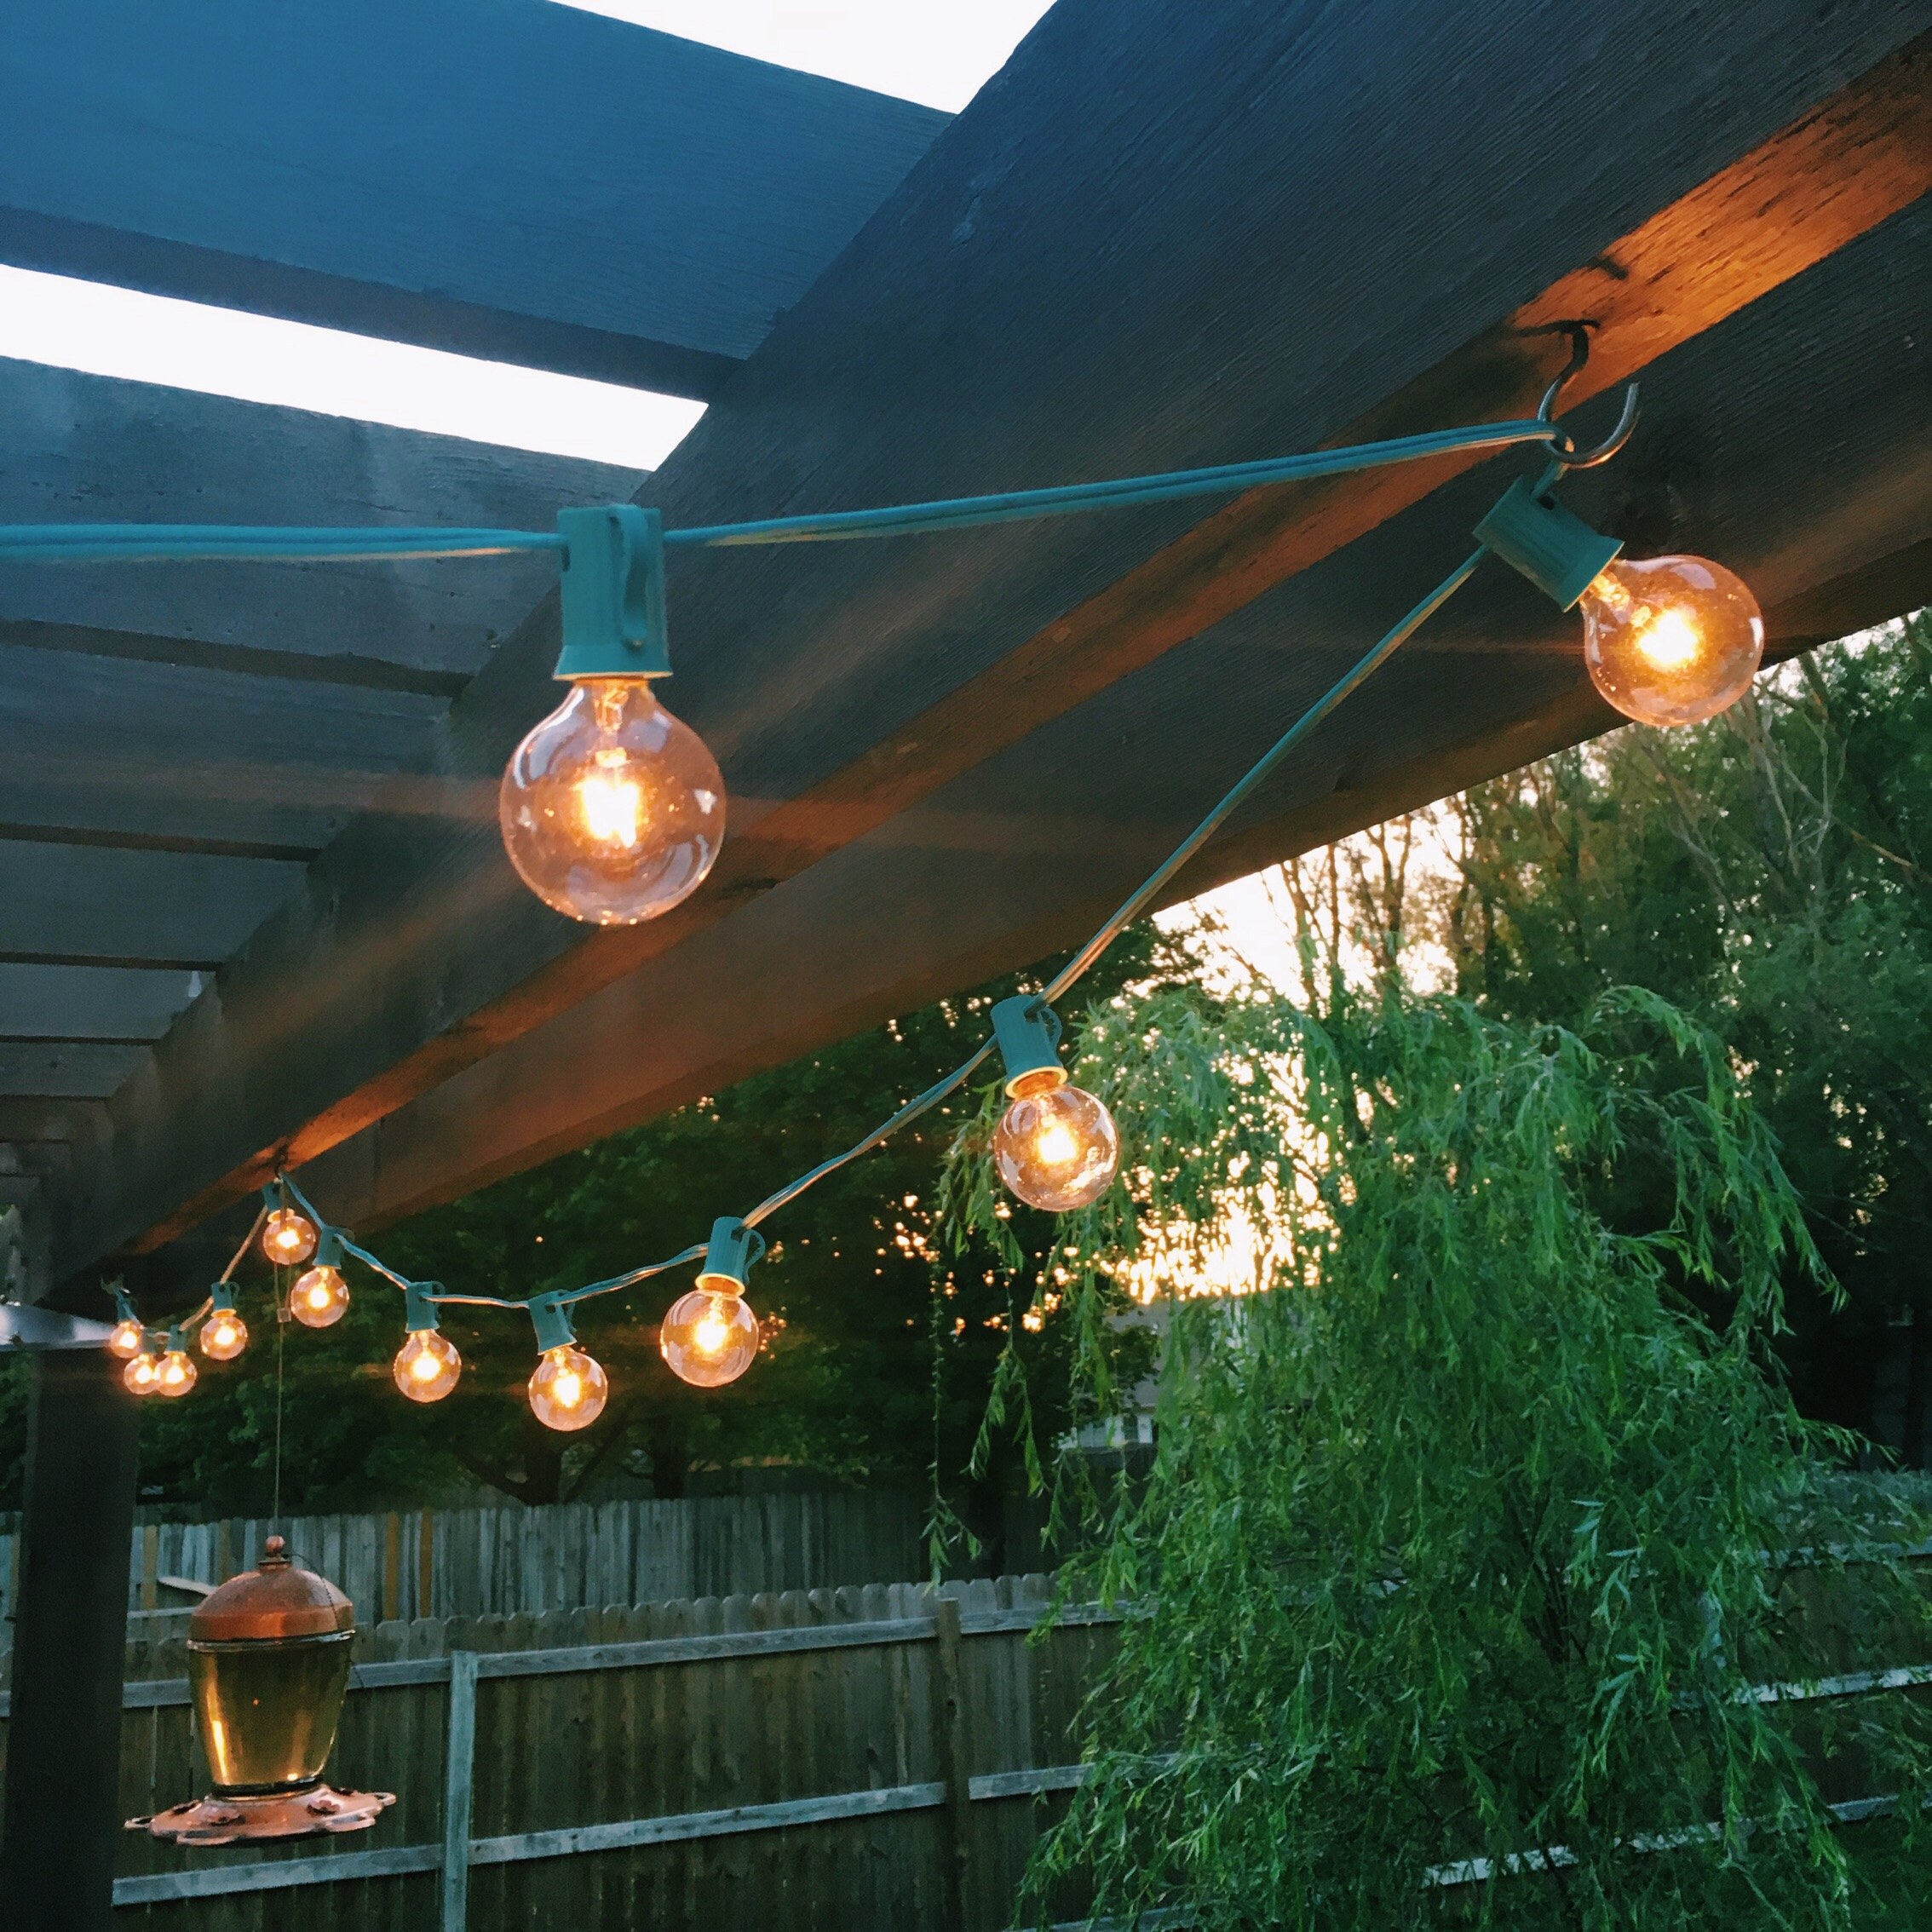 My husband built this pergola. He is awesome.